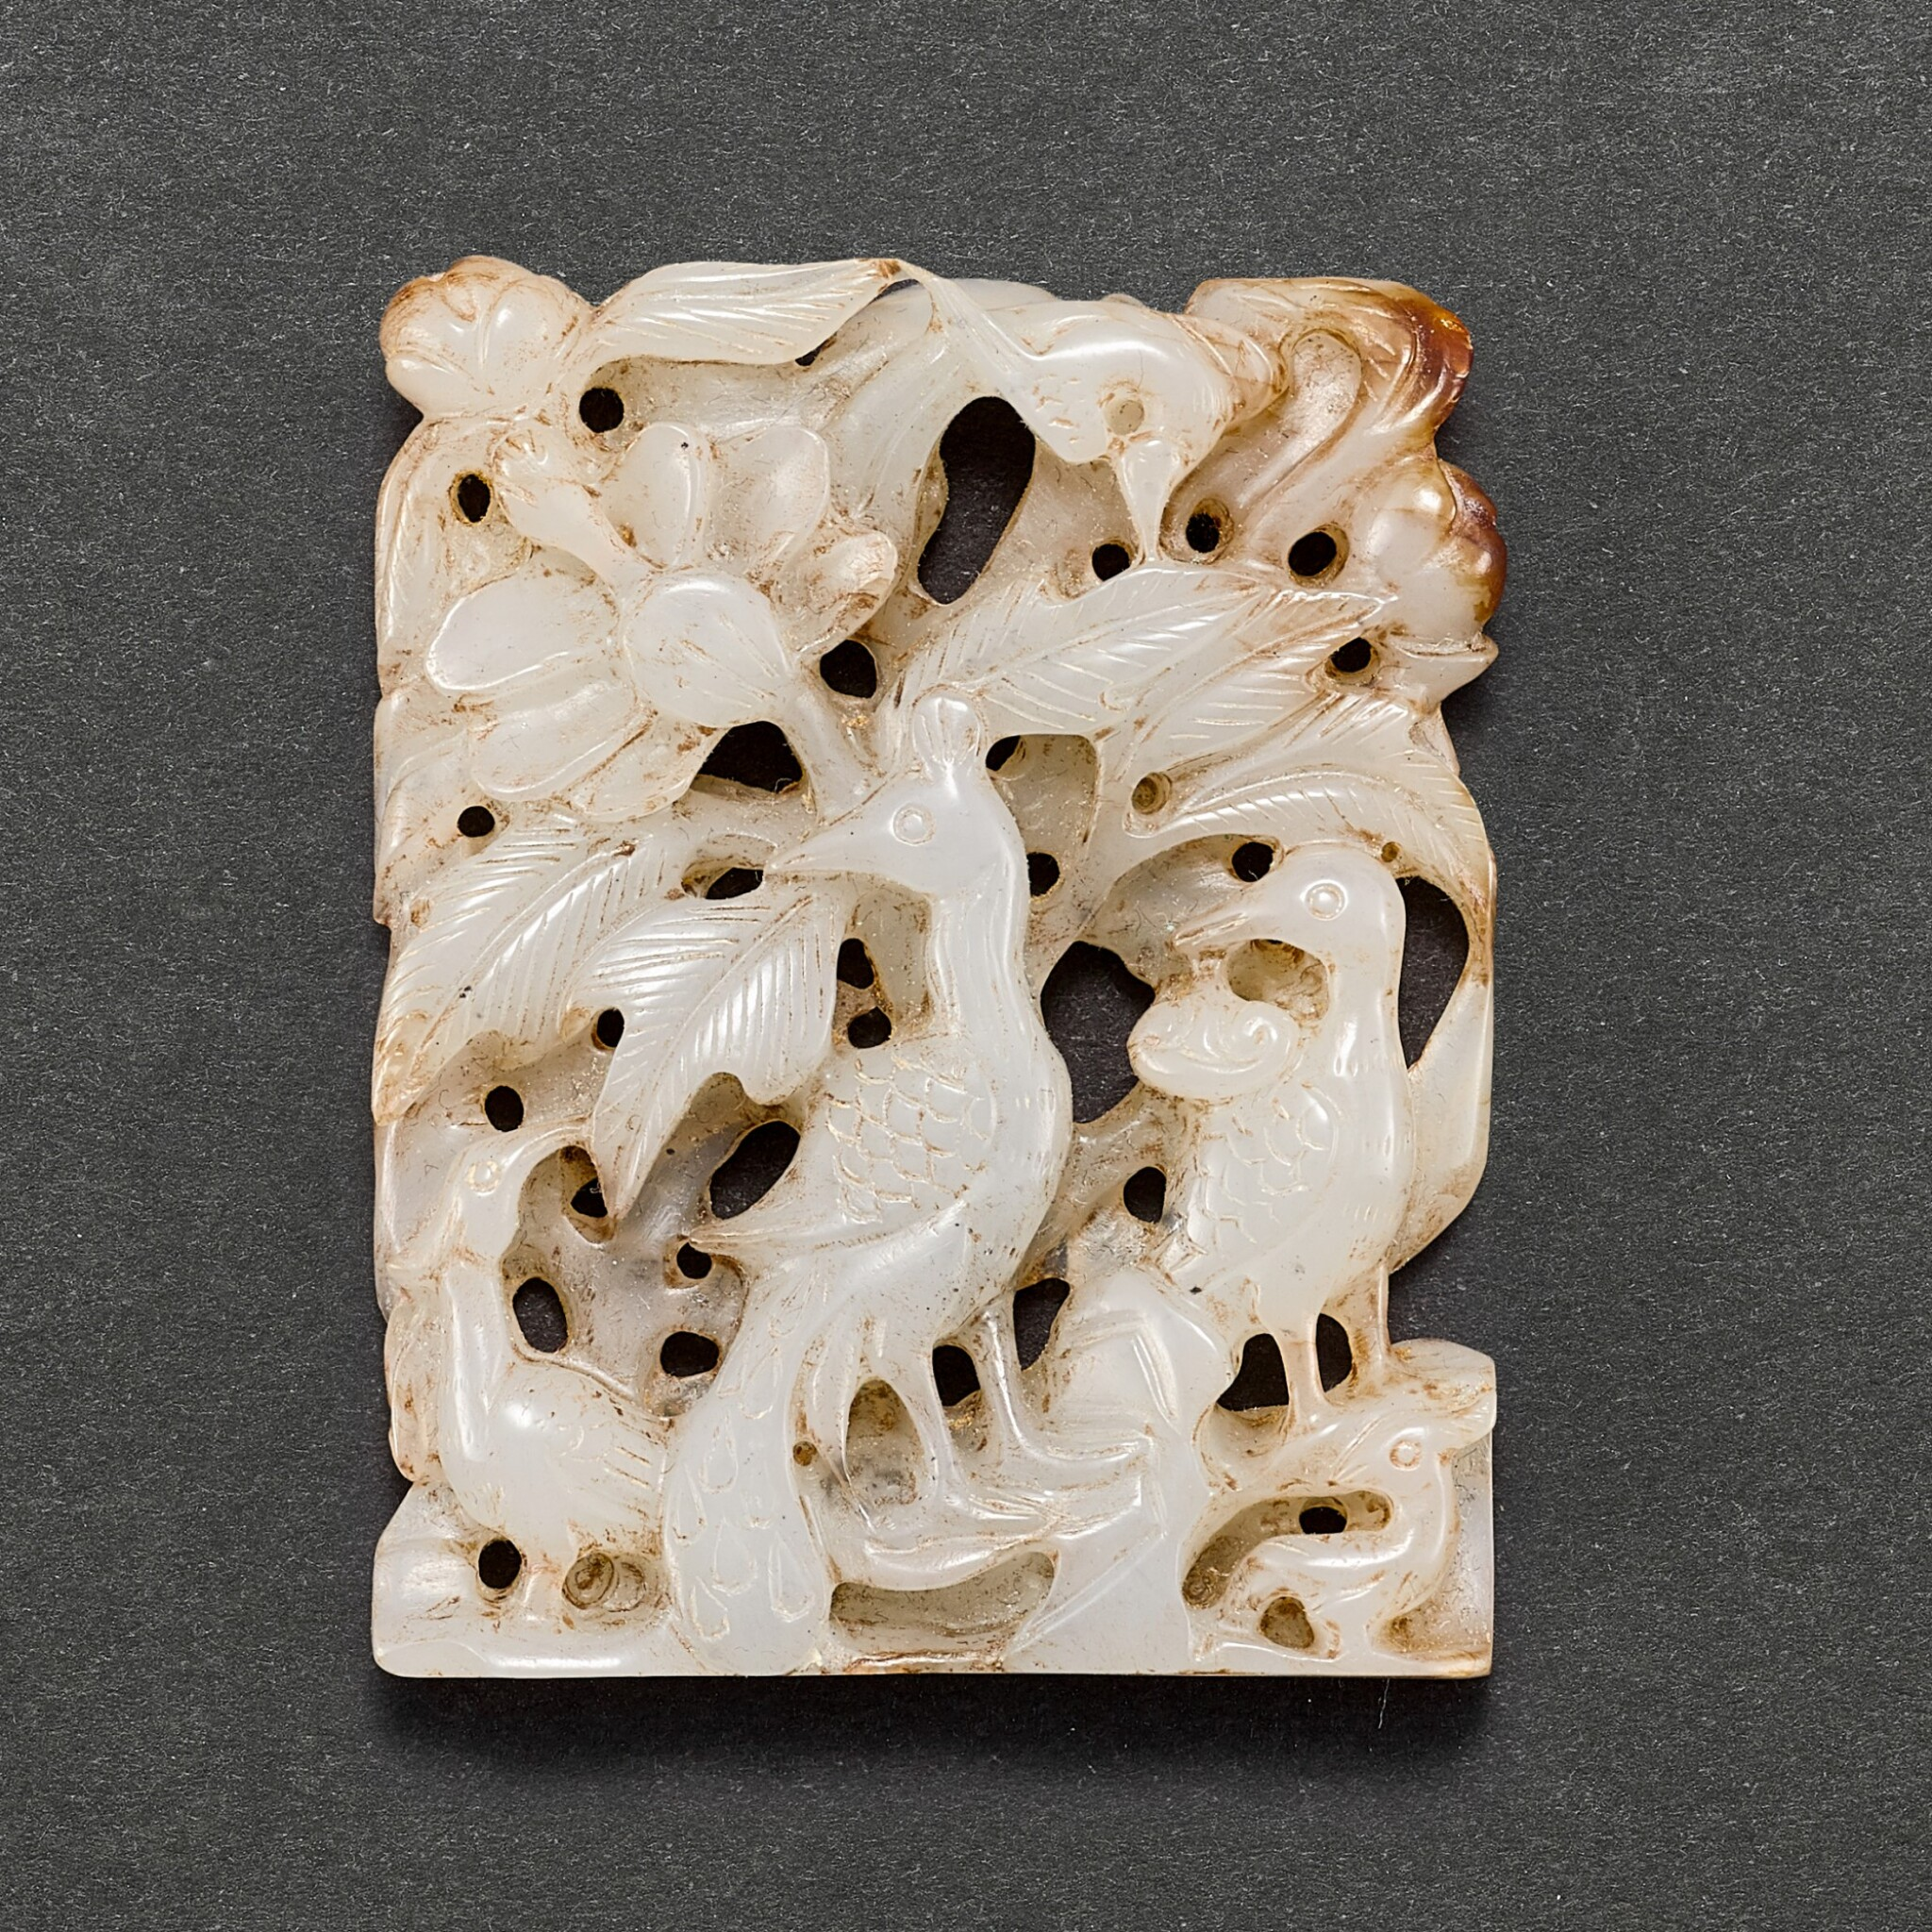 A GREYISH JADE RETICULATED 'PEACOCK' PLAQUE LIAO - JIN DYNASTY | 遼至金 灰白玉鏤雕孔雀花卉珮飾